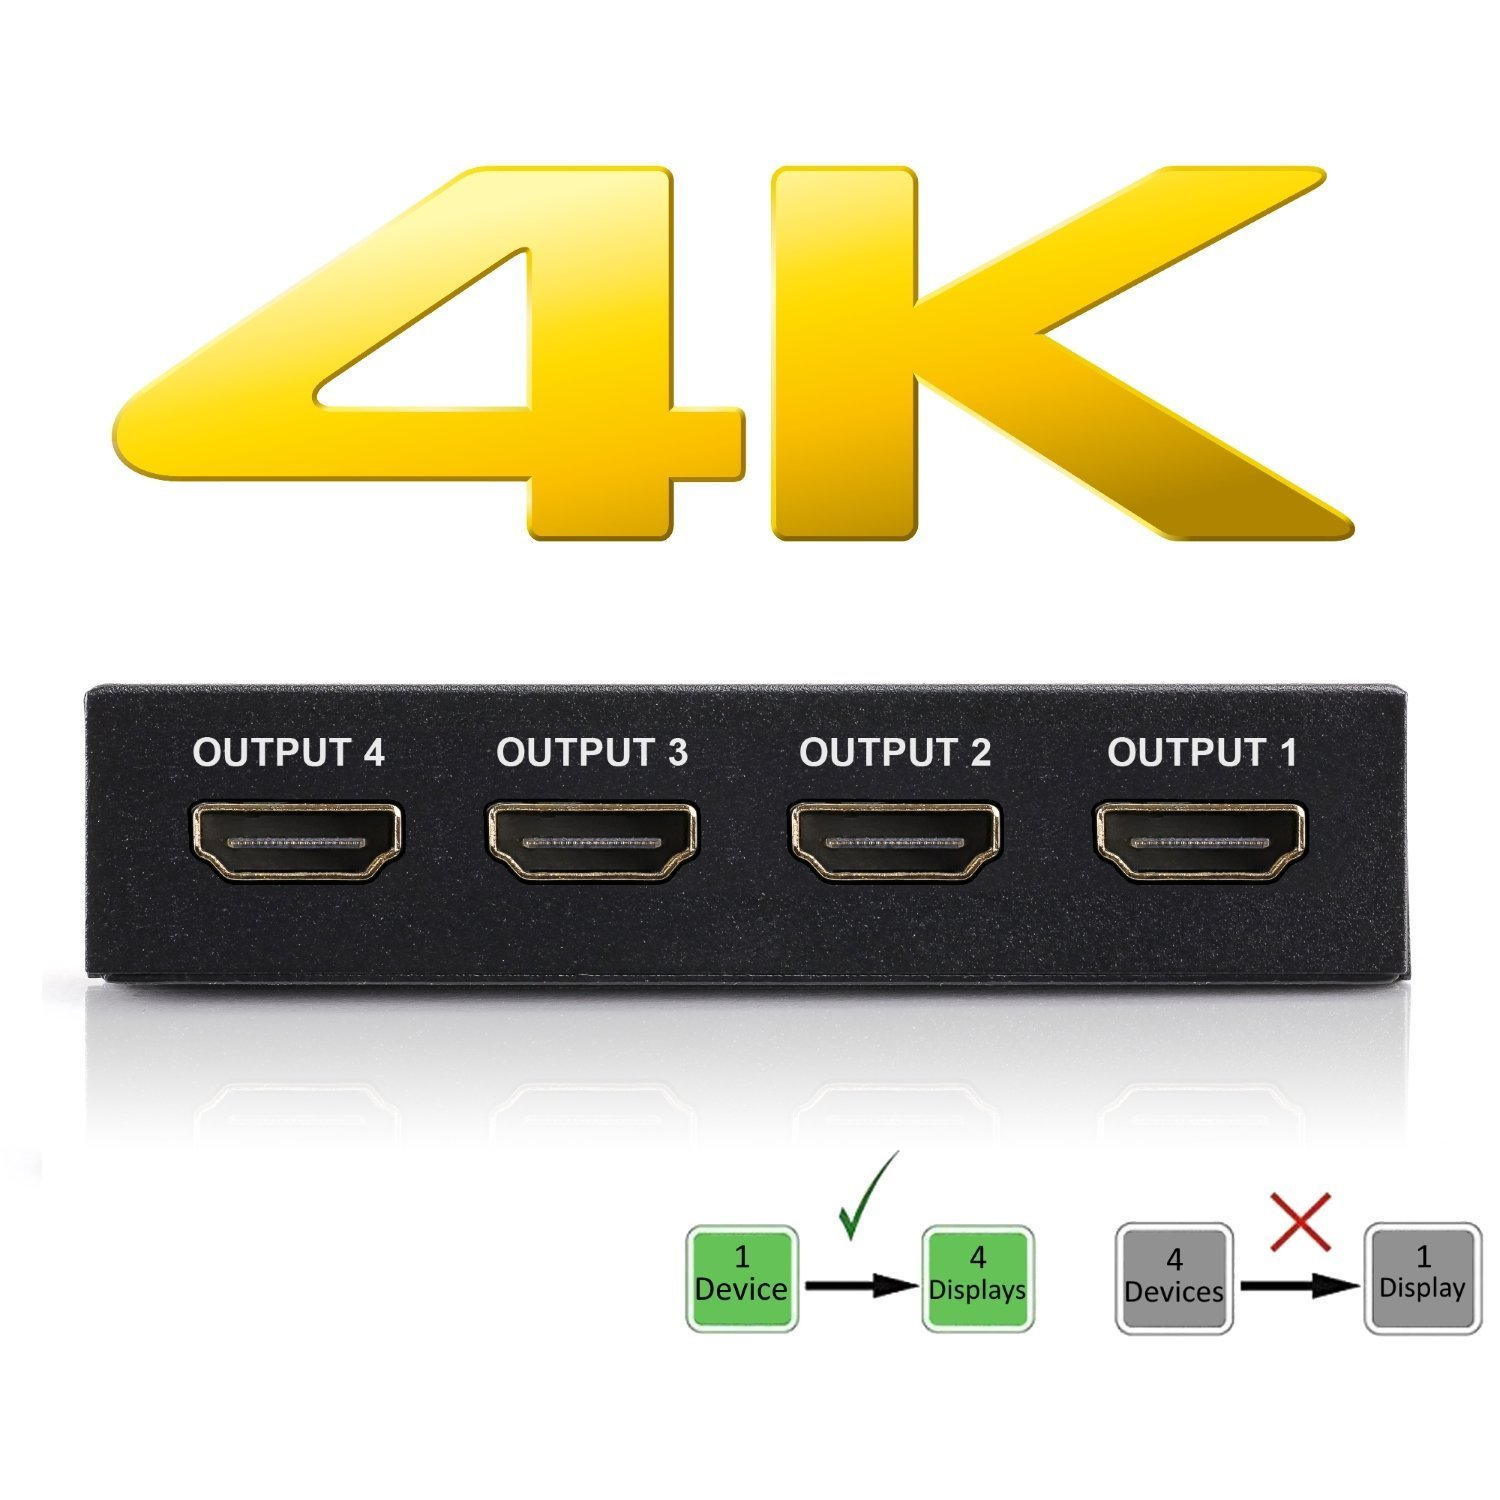 4K HDMI Splitter – 1 Input Device to 4 Displays – Save Money by Ditching Extra Cable Boxes - Powerful Signal Transfer Up to 65ft – Record & Stream Games from PS4, XBOX ONE & more